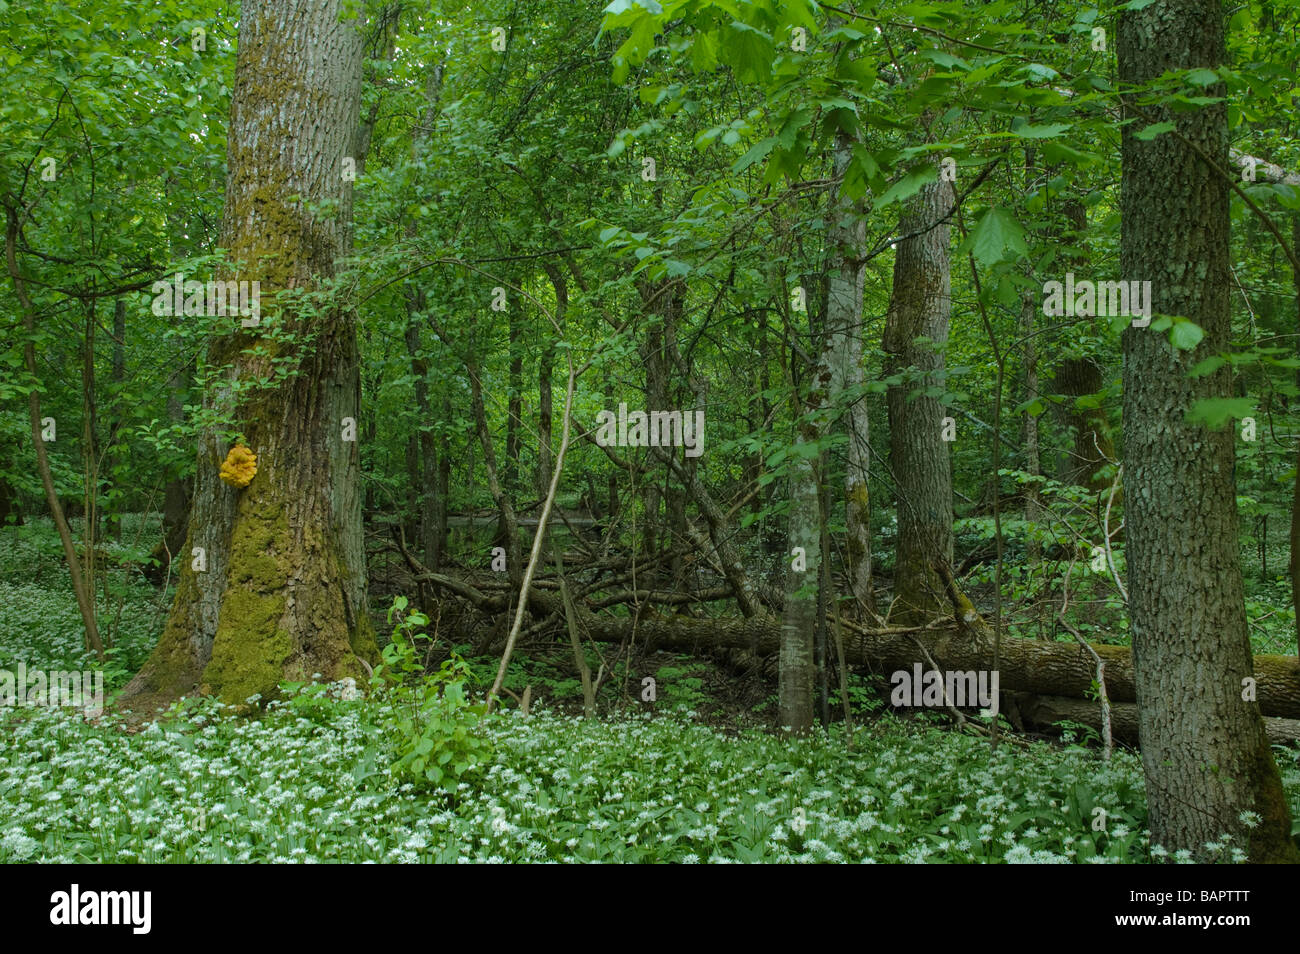 Habitat od European concern: Riparian mixed forest - Stock Image